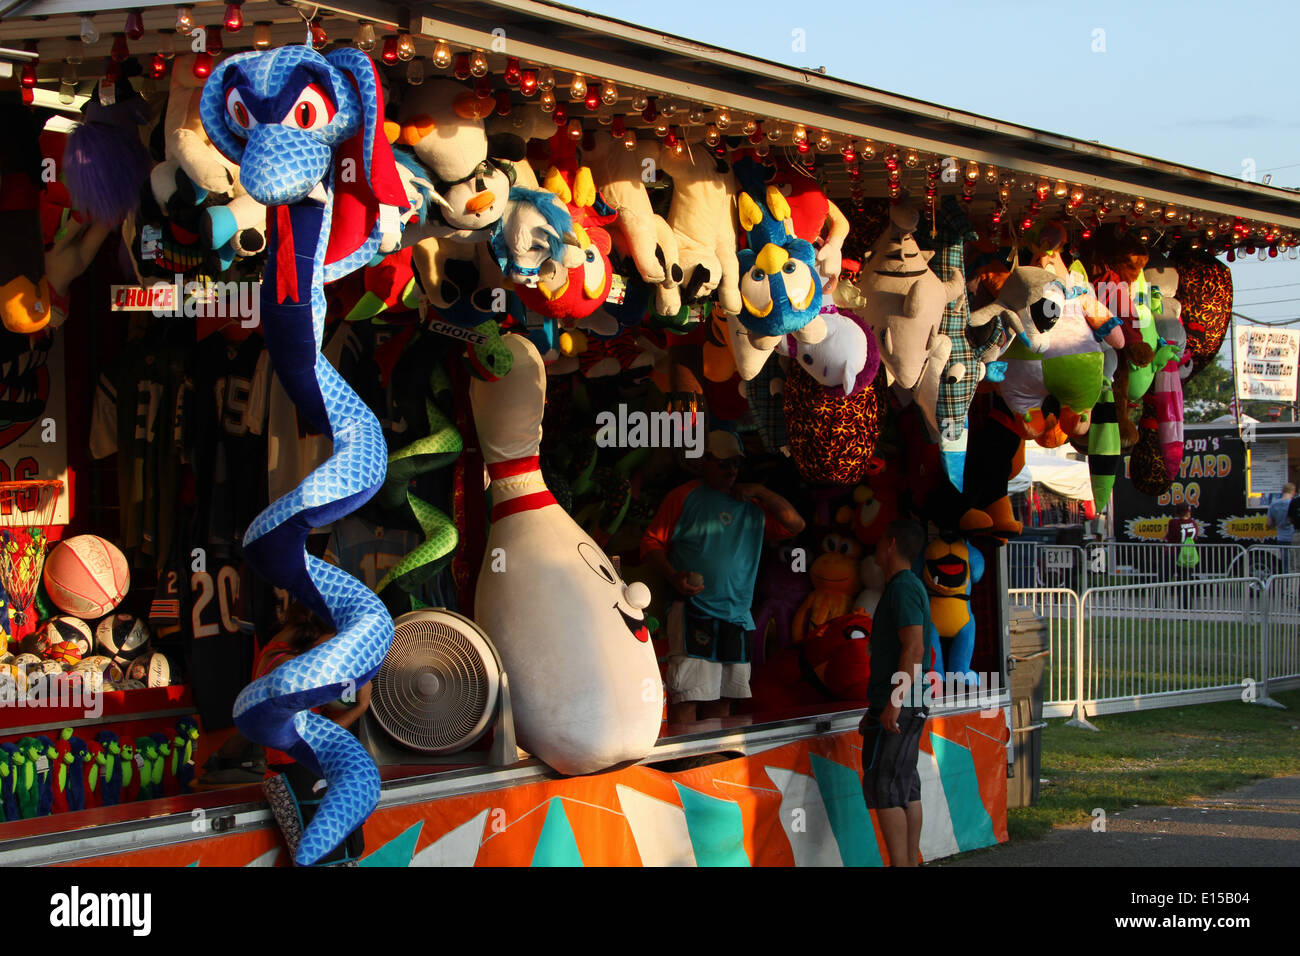 Carnival Snake Midway Carnival Games And Stuffed Animals Stock